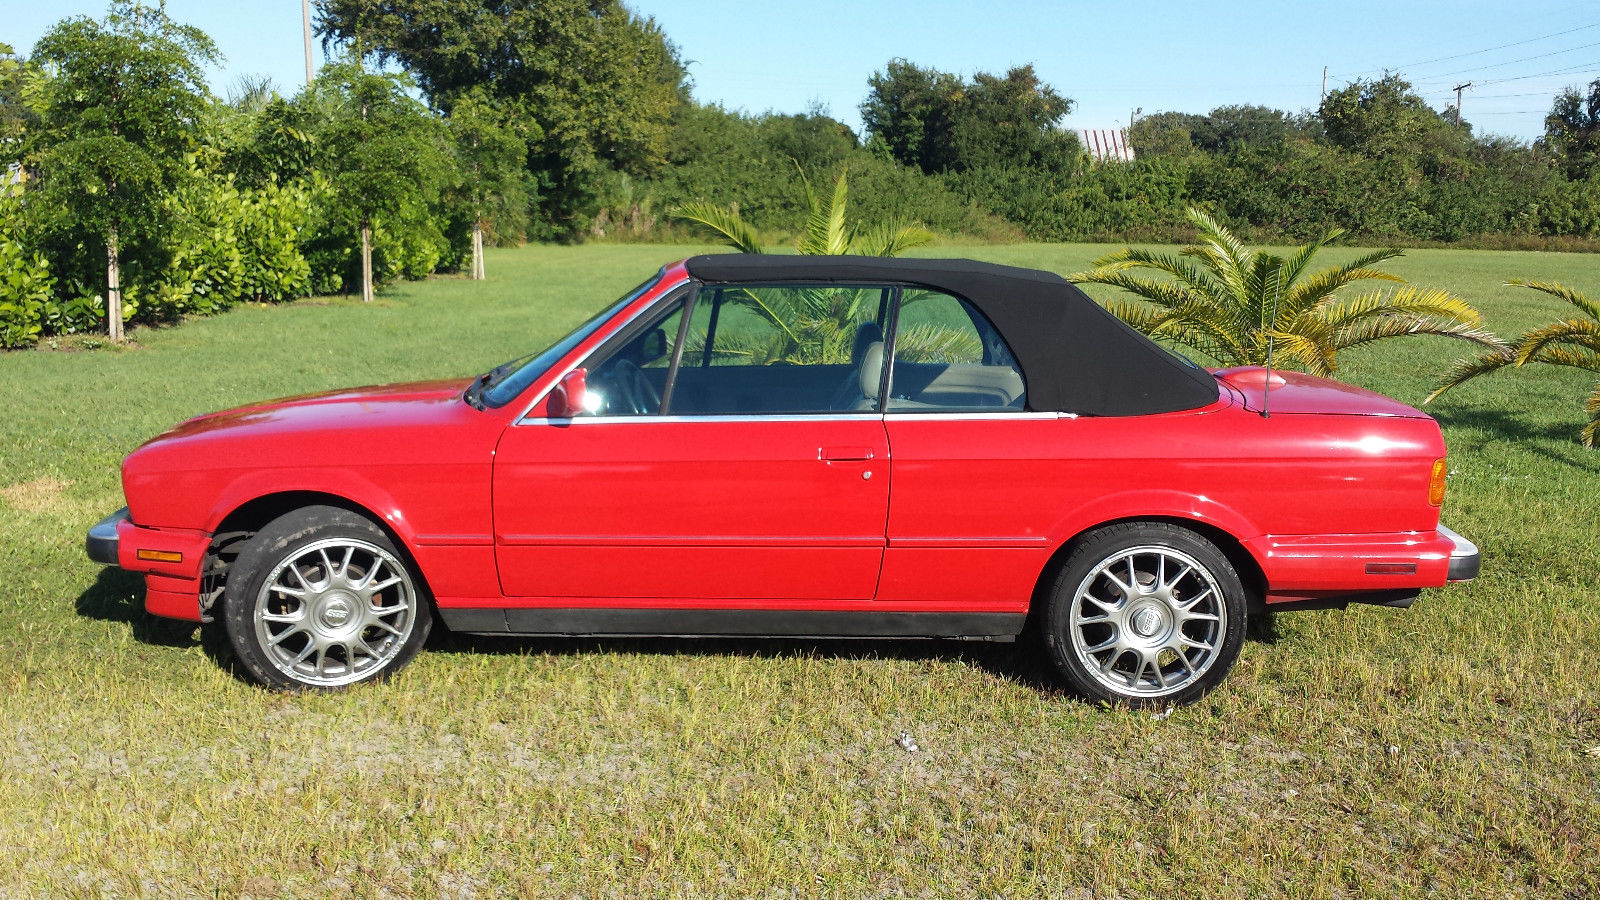 bmw e30 325i convertible 5 speed classic bmw 3 series 1987 for sale. Black Bedroom Furniture Sets. Home Design Ideas